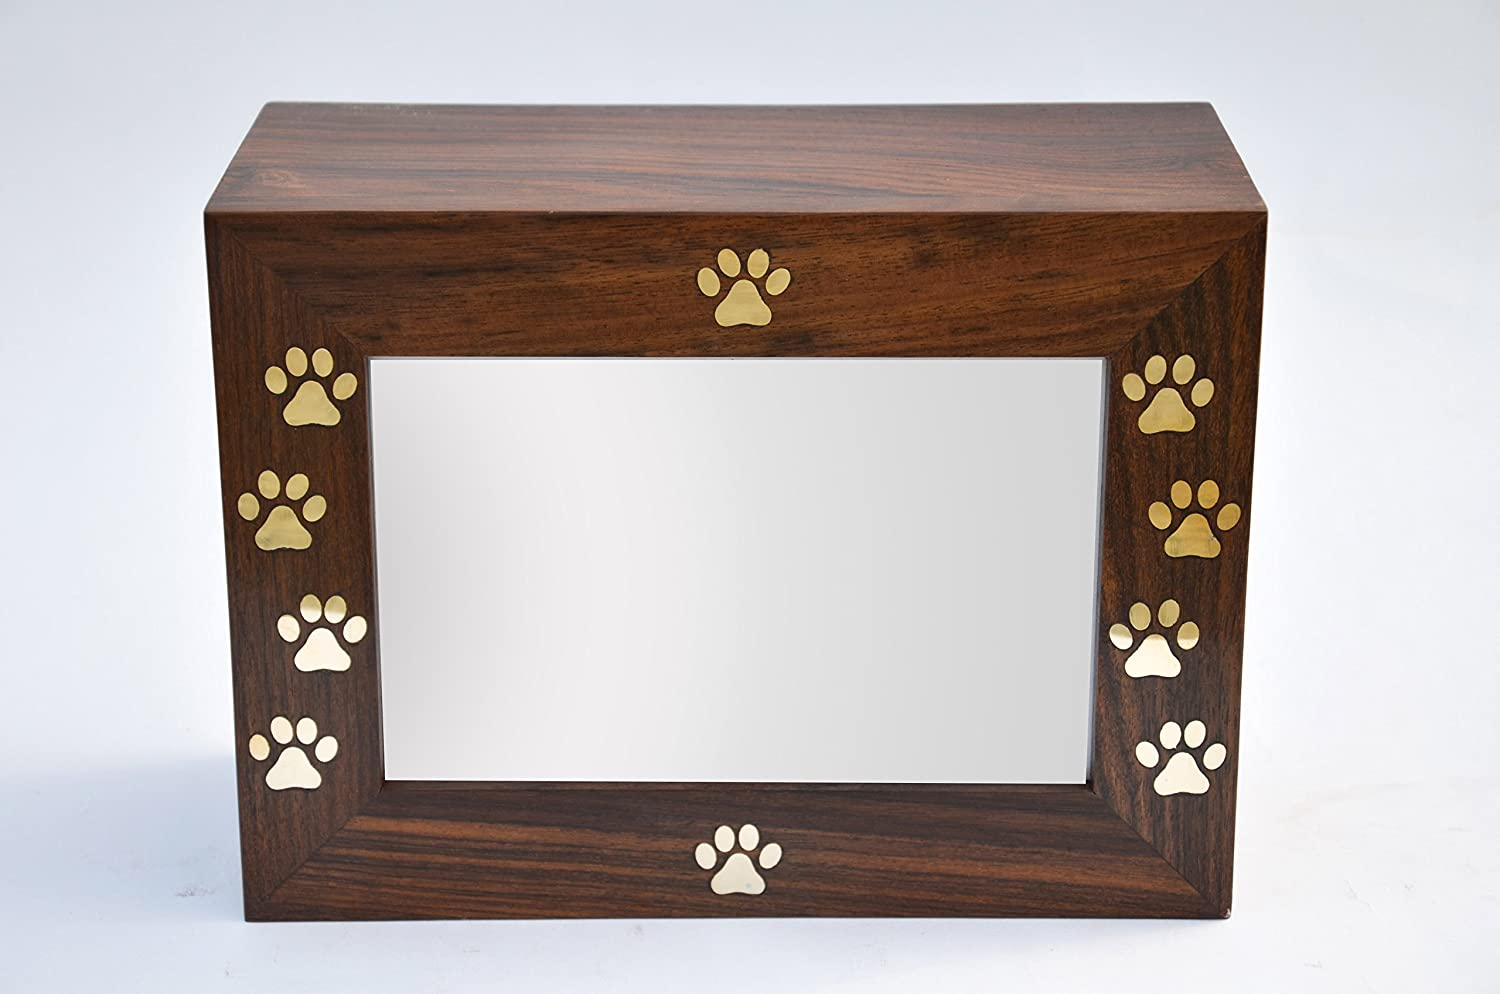 STAR INDIA CRAFT Brass Paws Inlaid Cremation Urns for Ashes Photo Frame Rosewood Pet Urns for Dogs Keepsake Your Memories Alive with Wooden Keepsake Box,A Perfect Wooden Box for Your Loved Ones